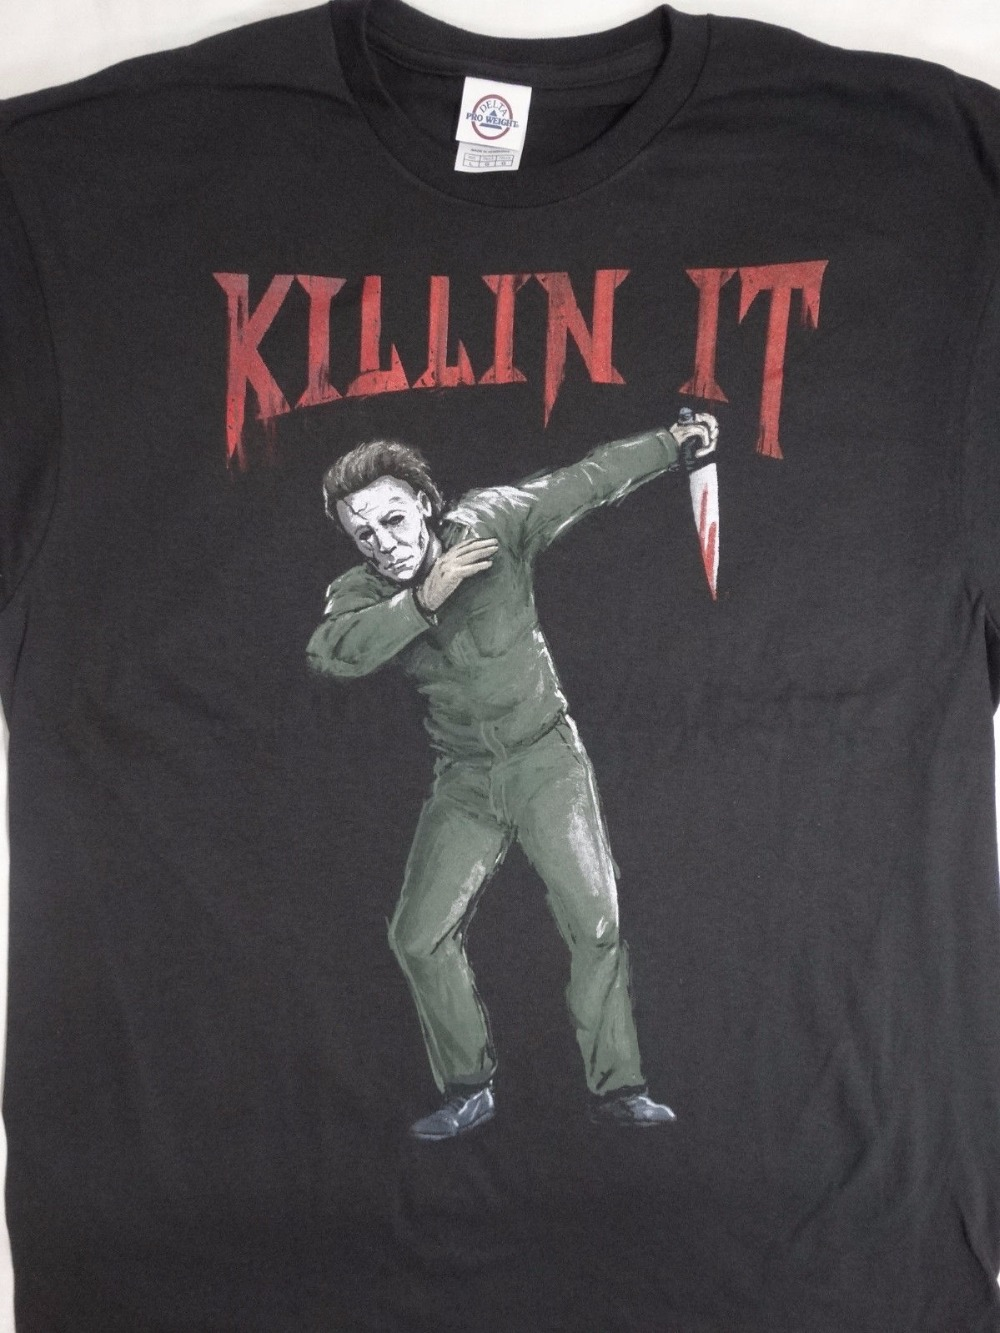 Printed Shirts Crew Neck Short Michael Myers Dabbing Killin It Horror Movie Printing Machine Mens T Shirts ...